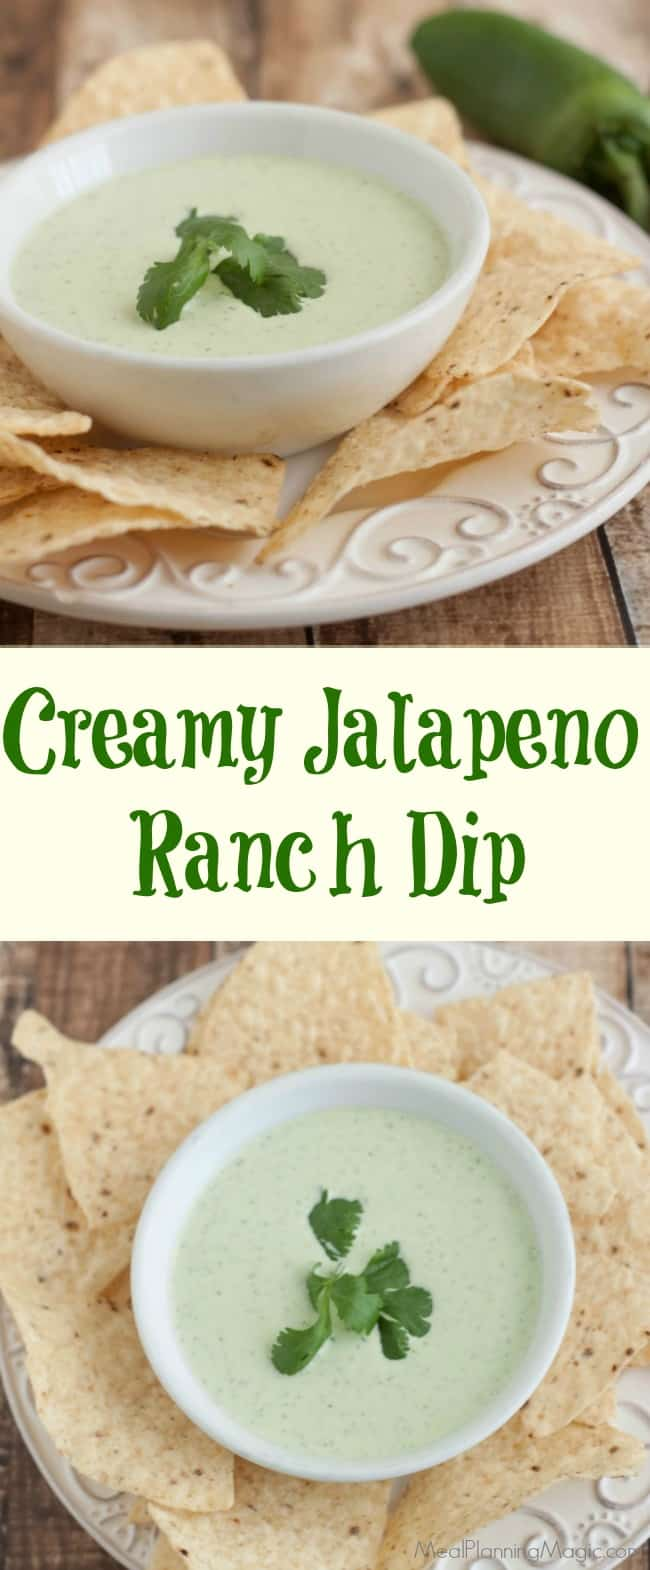 creamy jalapeno ranch dip collage